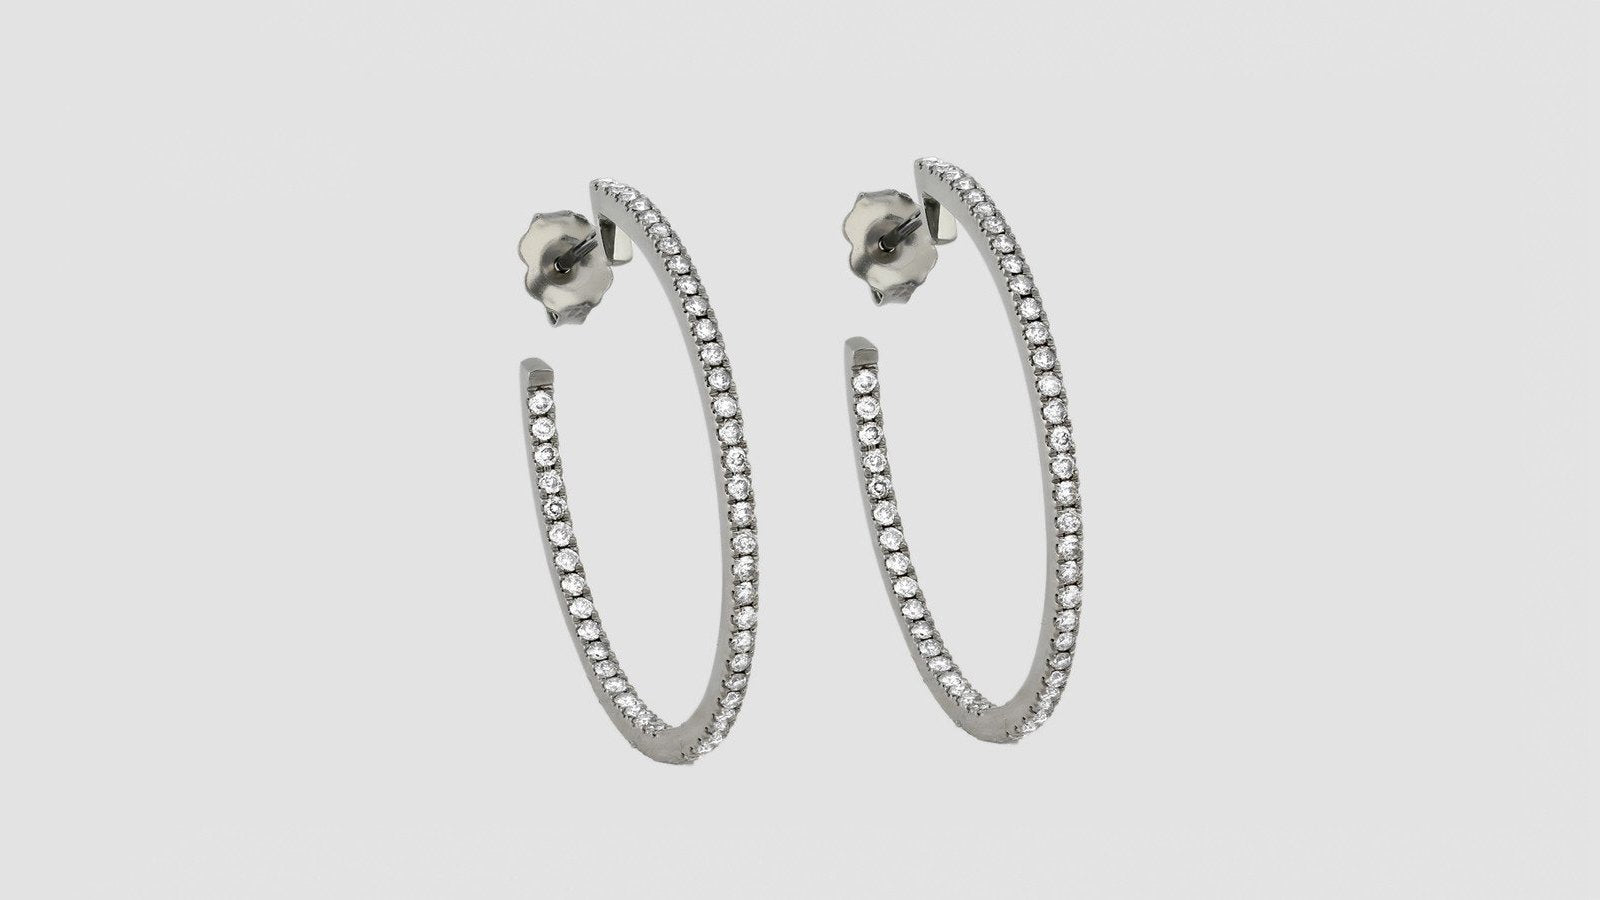 The Diamond Hoop Earrings